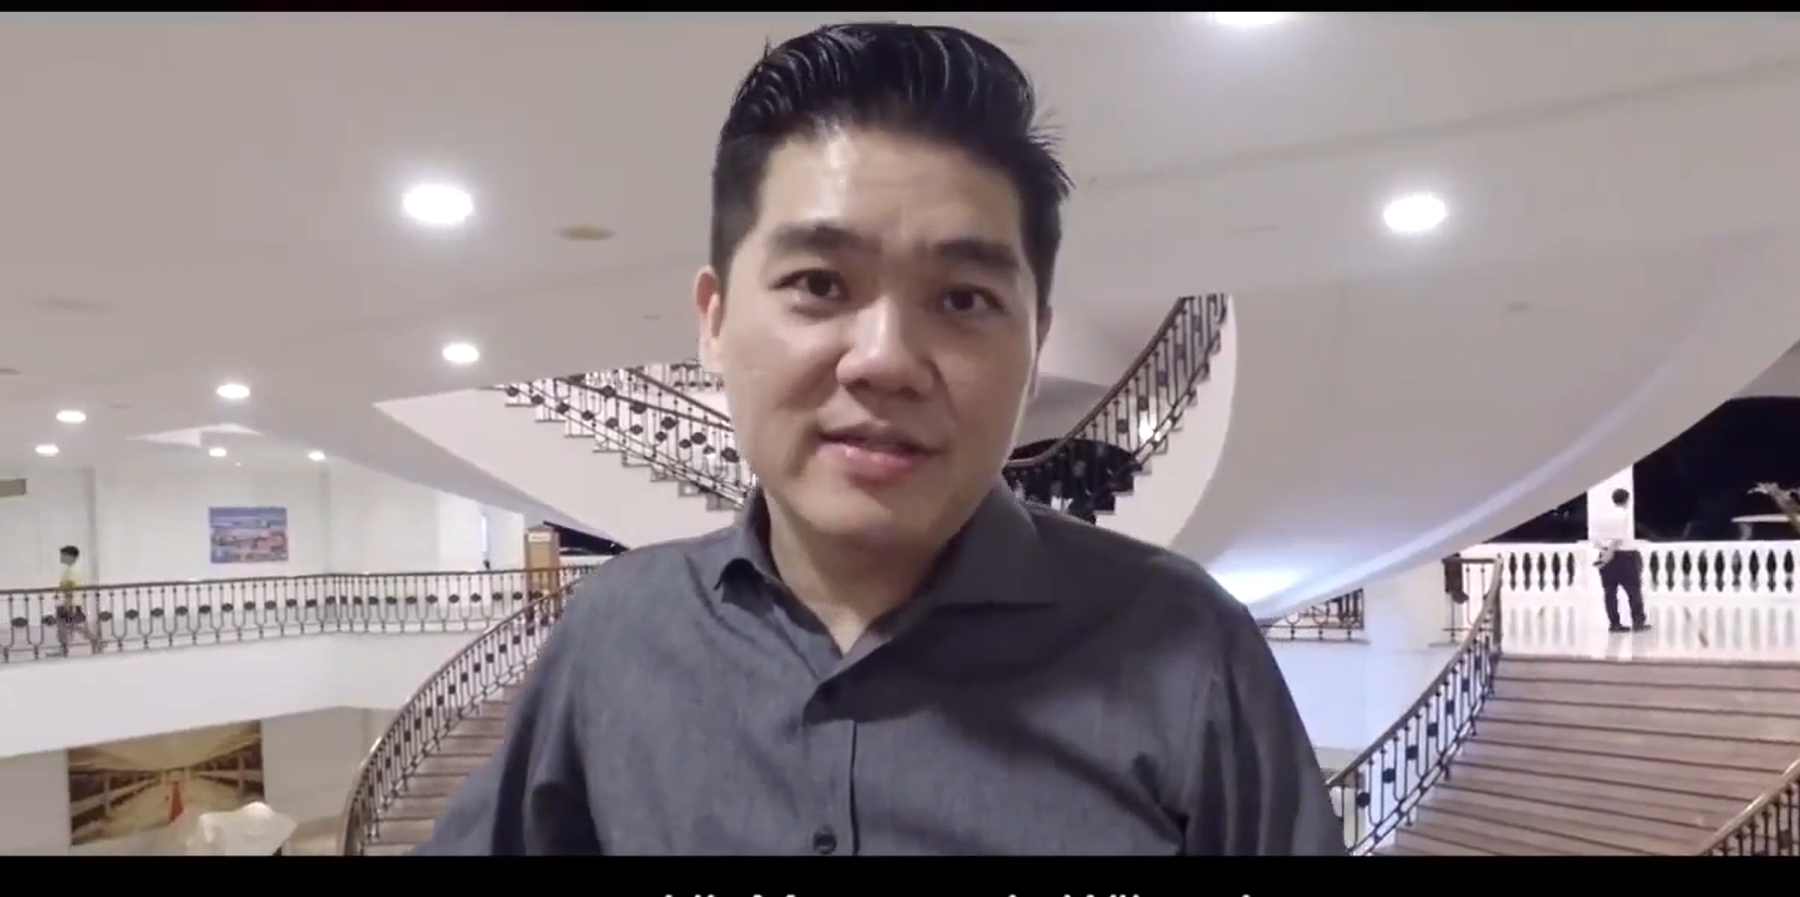 Interior Design Singapore | A talk with one of the directors from Rezt and Relax Interior.